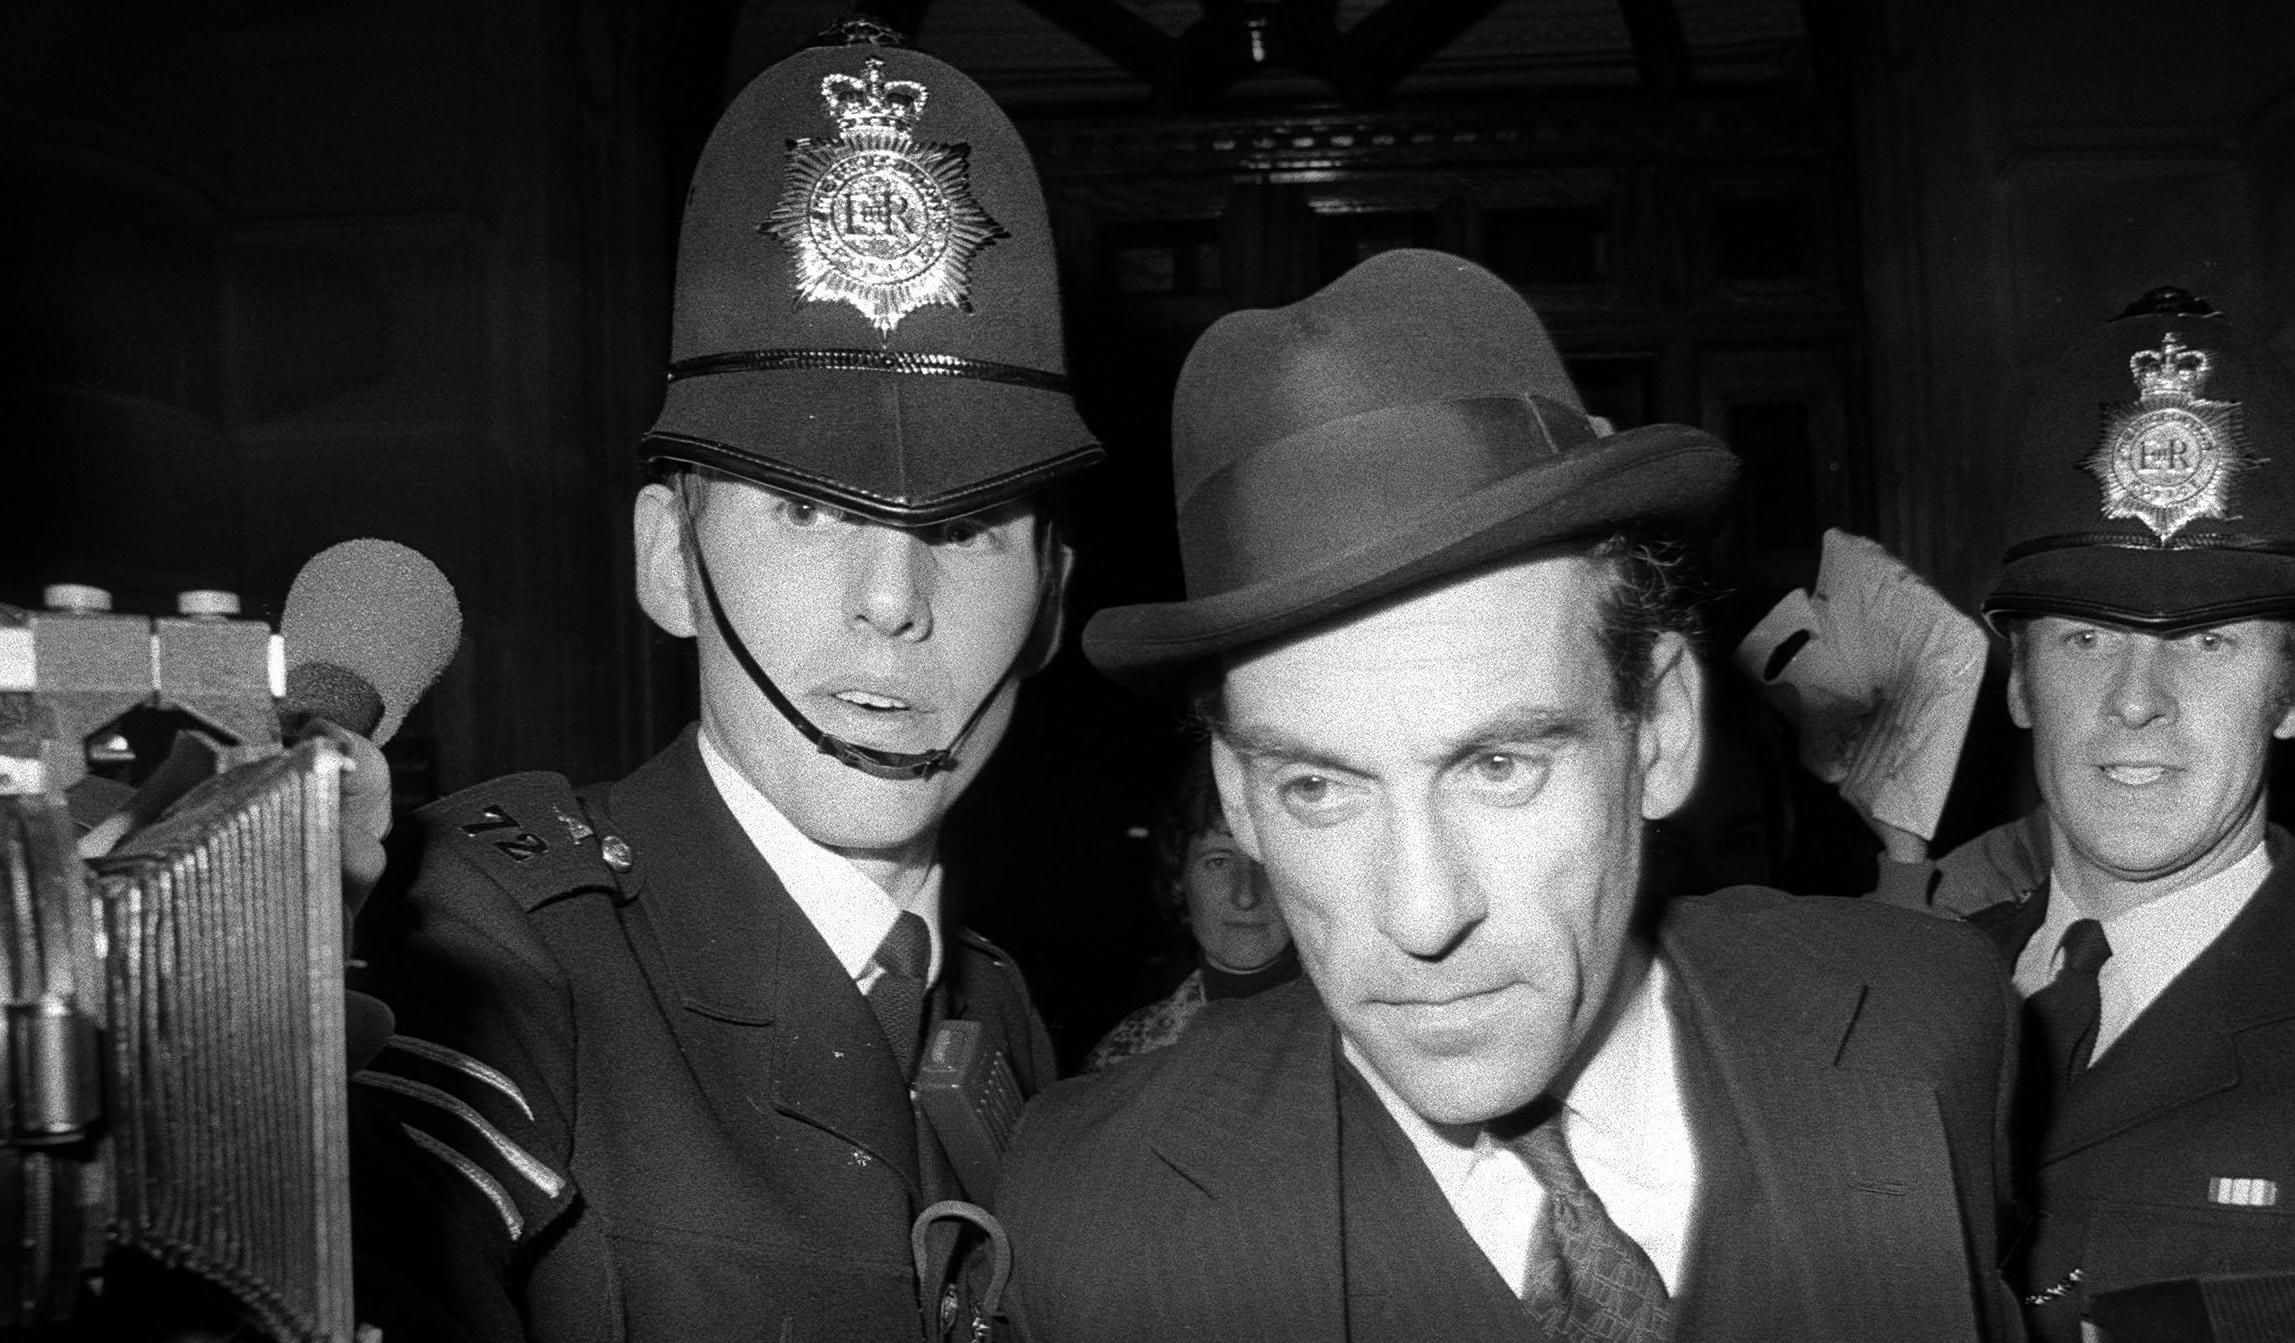 The Jeremy Thorpe scandal was a classic example of the establishment – including some of the mainstream media – protecting its own